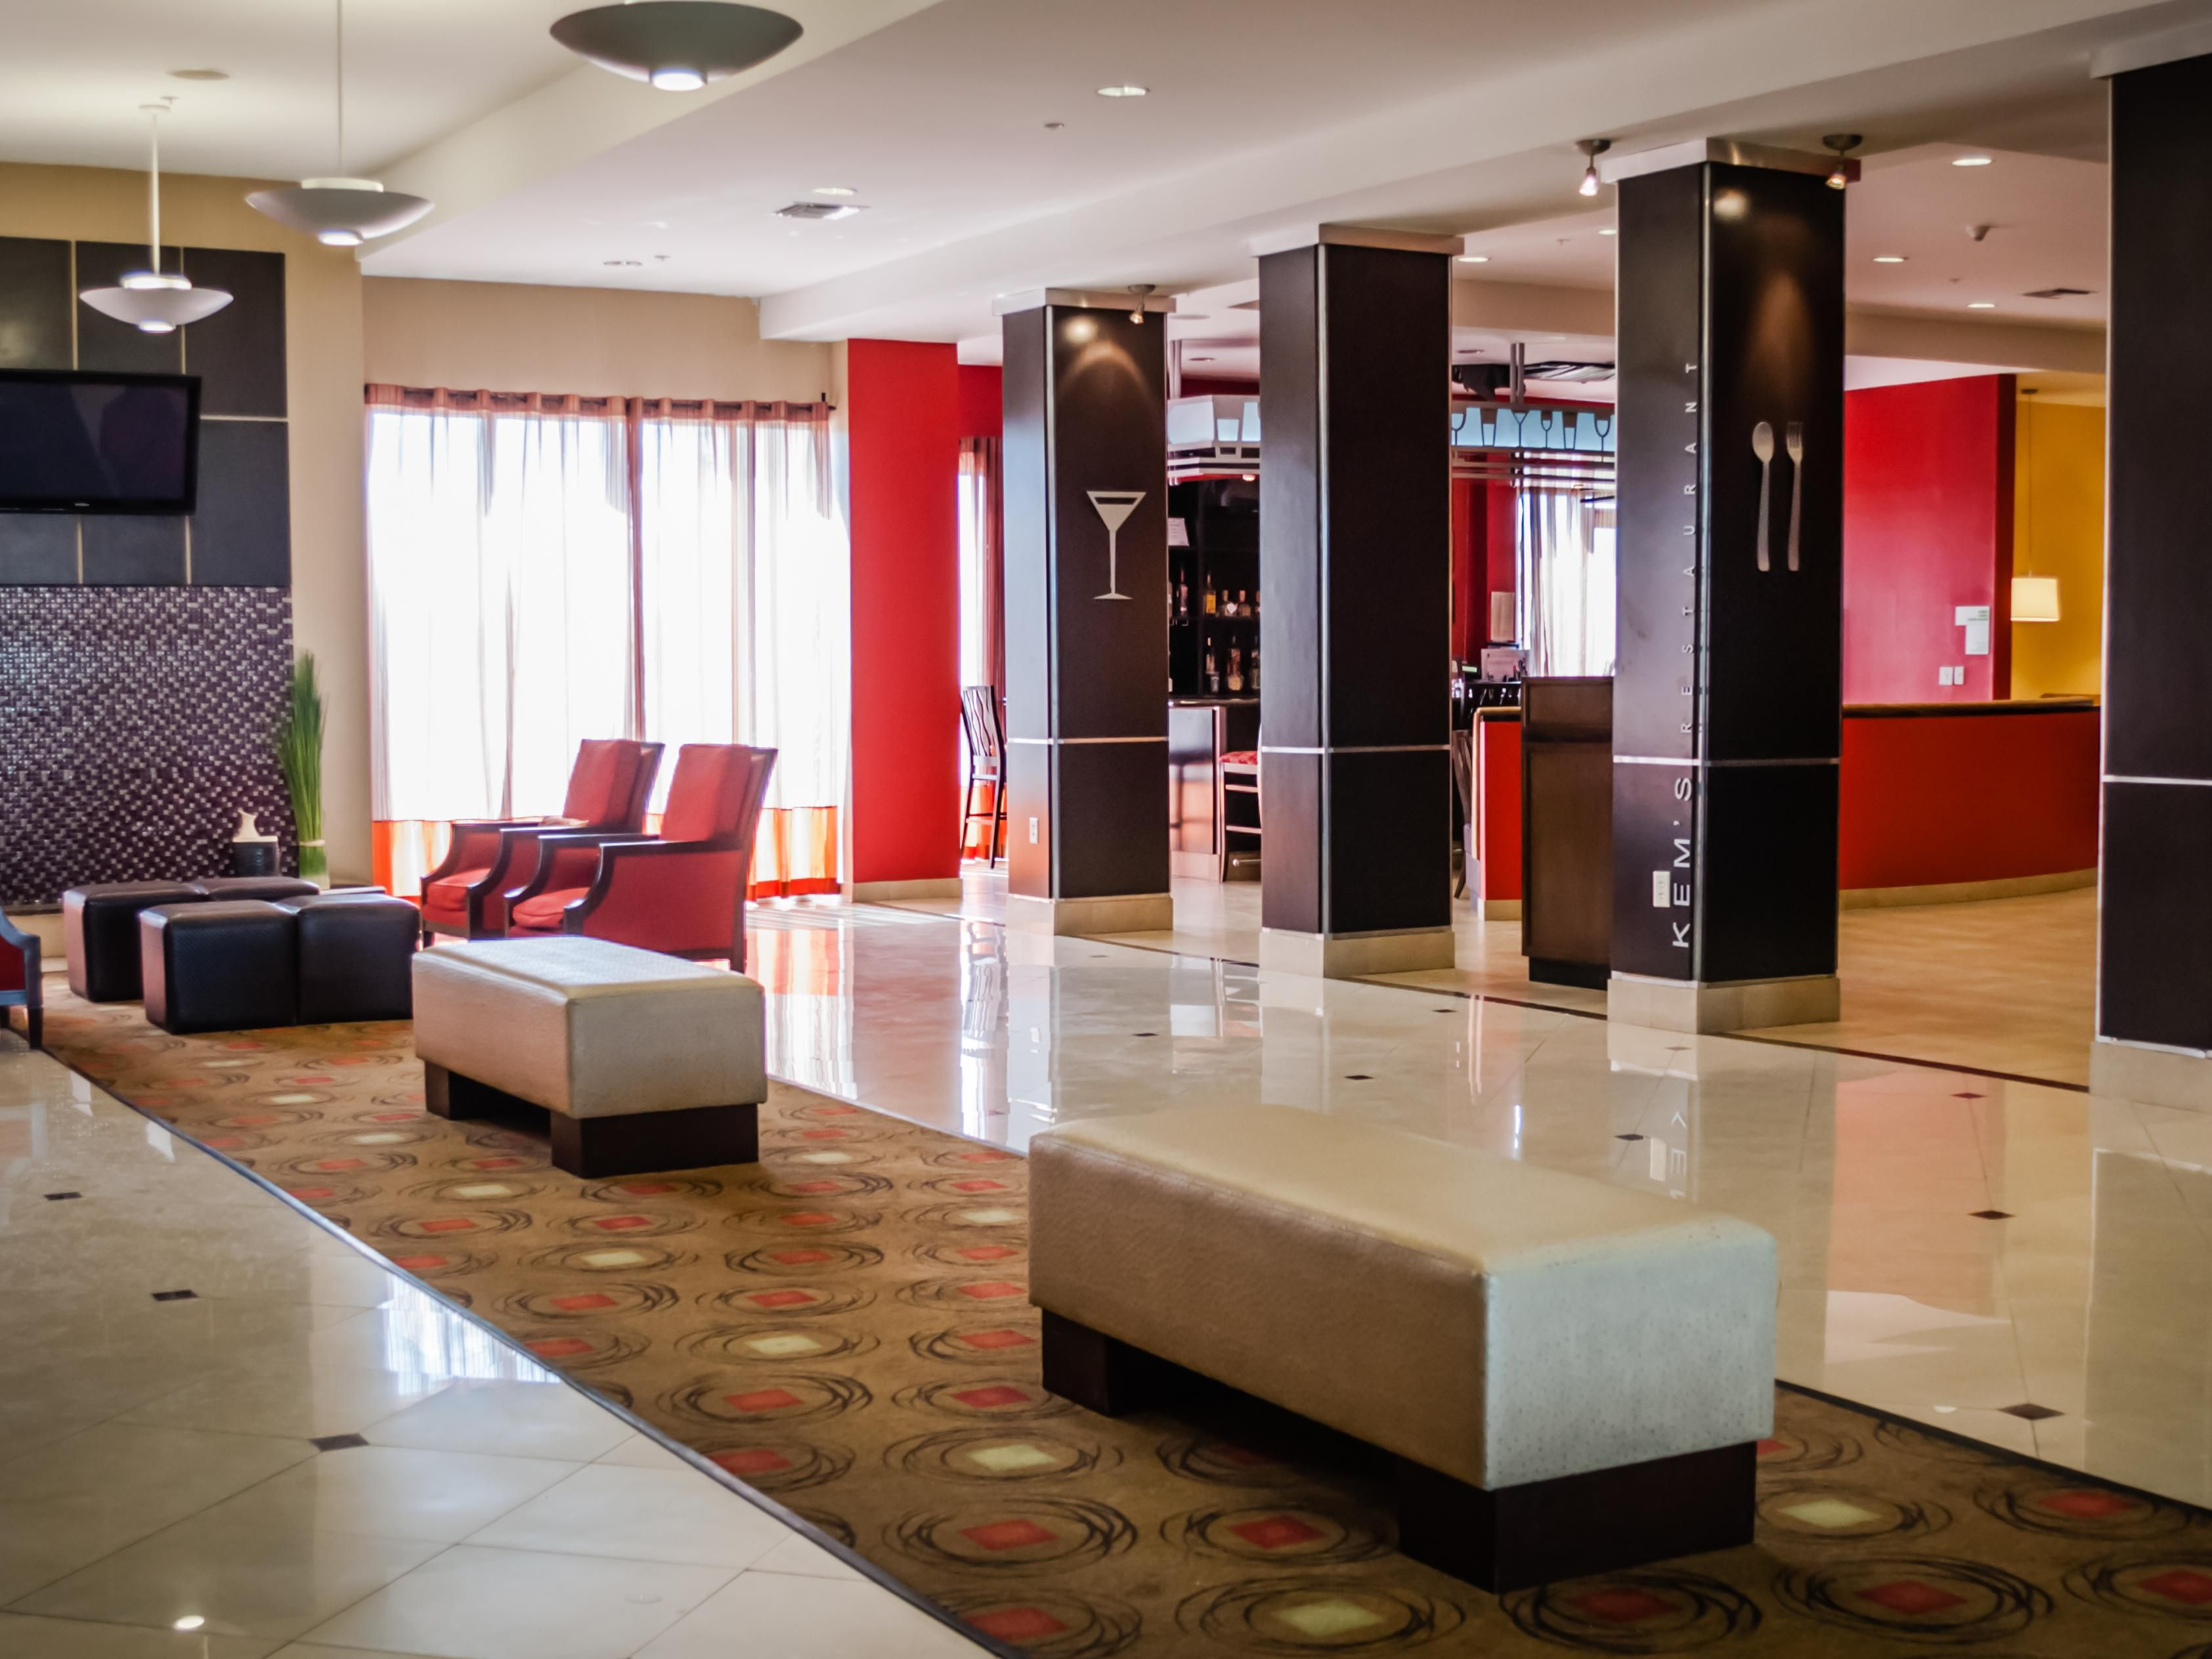 Beautiful Spacious Lobby for Socializing